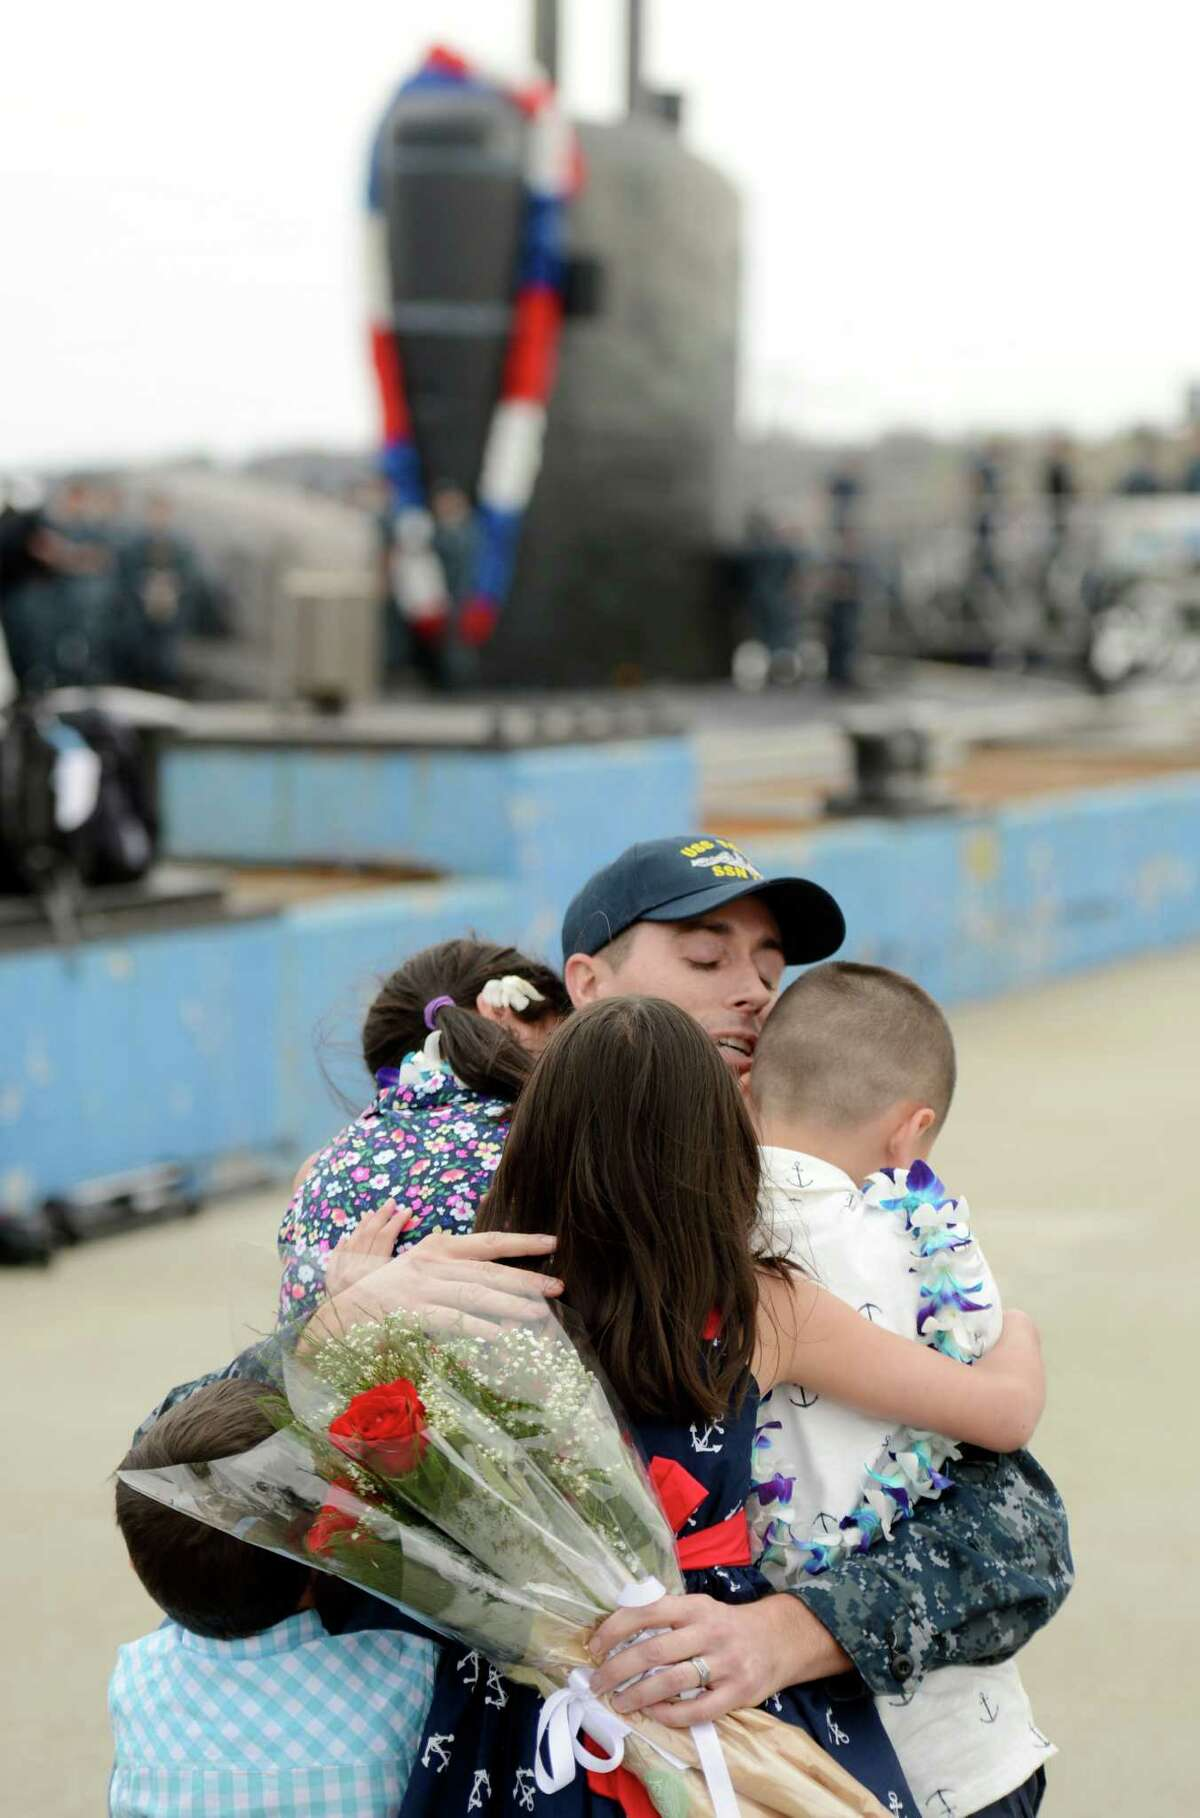 Petty Officer 2nd Class Clint Van de Water hugs his children Elizabeth, 10, Luke, 7, Isabelle, 7, and Jaxon 3, as the U.S. Navy submarine USS Toledo (SSN 769) returns to the Navy Submarine Base in Groton, Conn., Monday, April 25, 2016, following a six-month deployment. The Toledo visited ports in Bahrain, France, Spain and Greece.